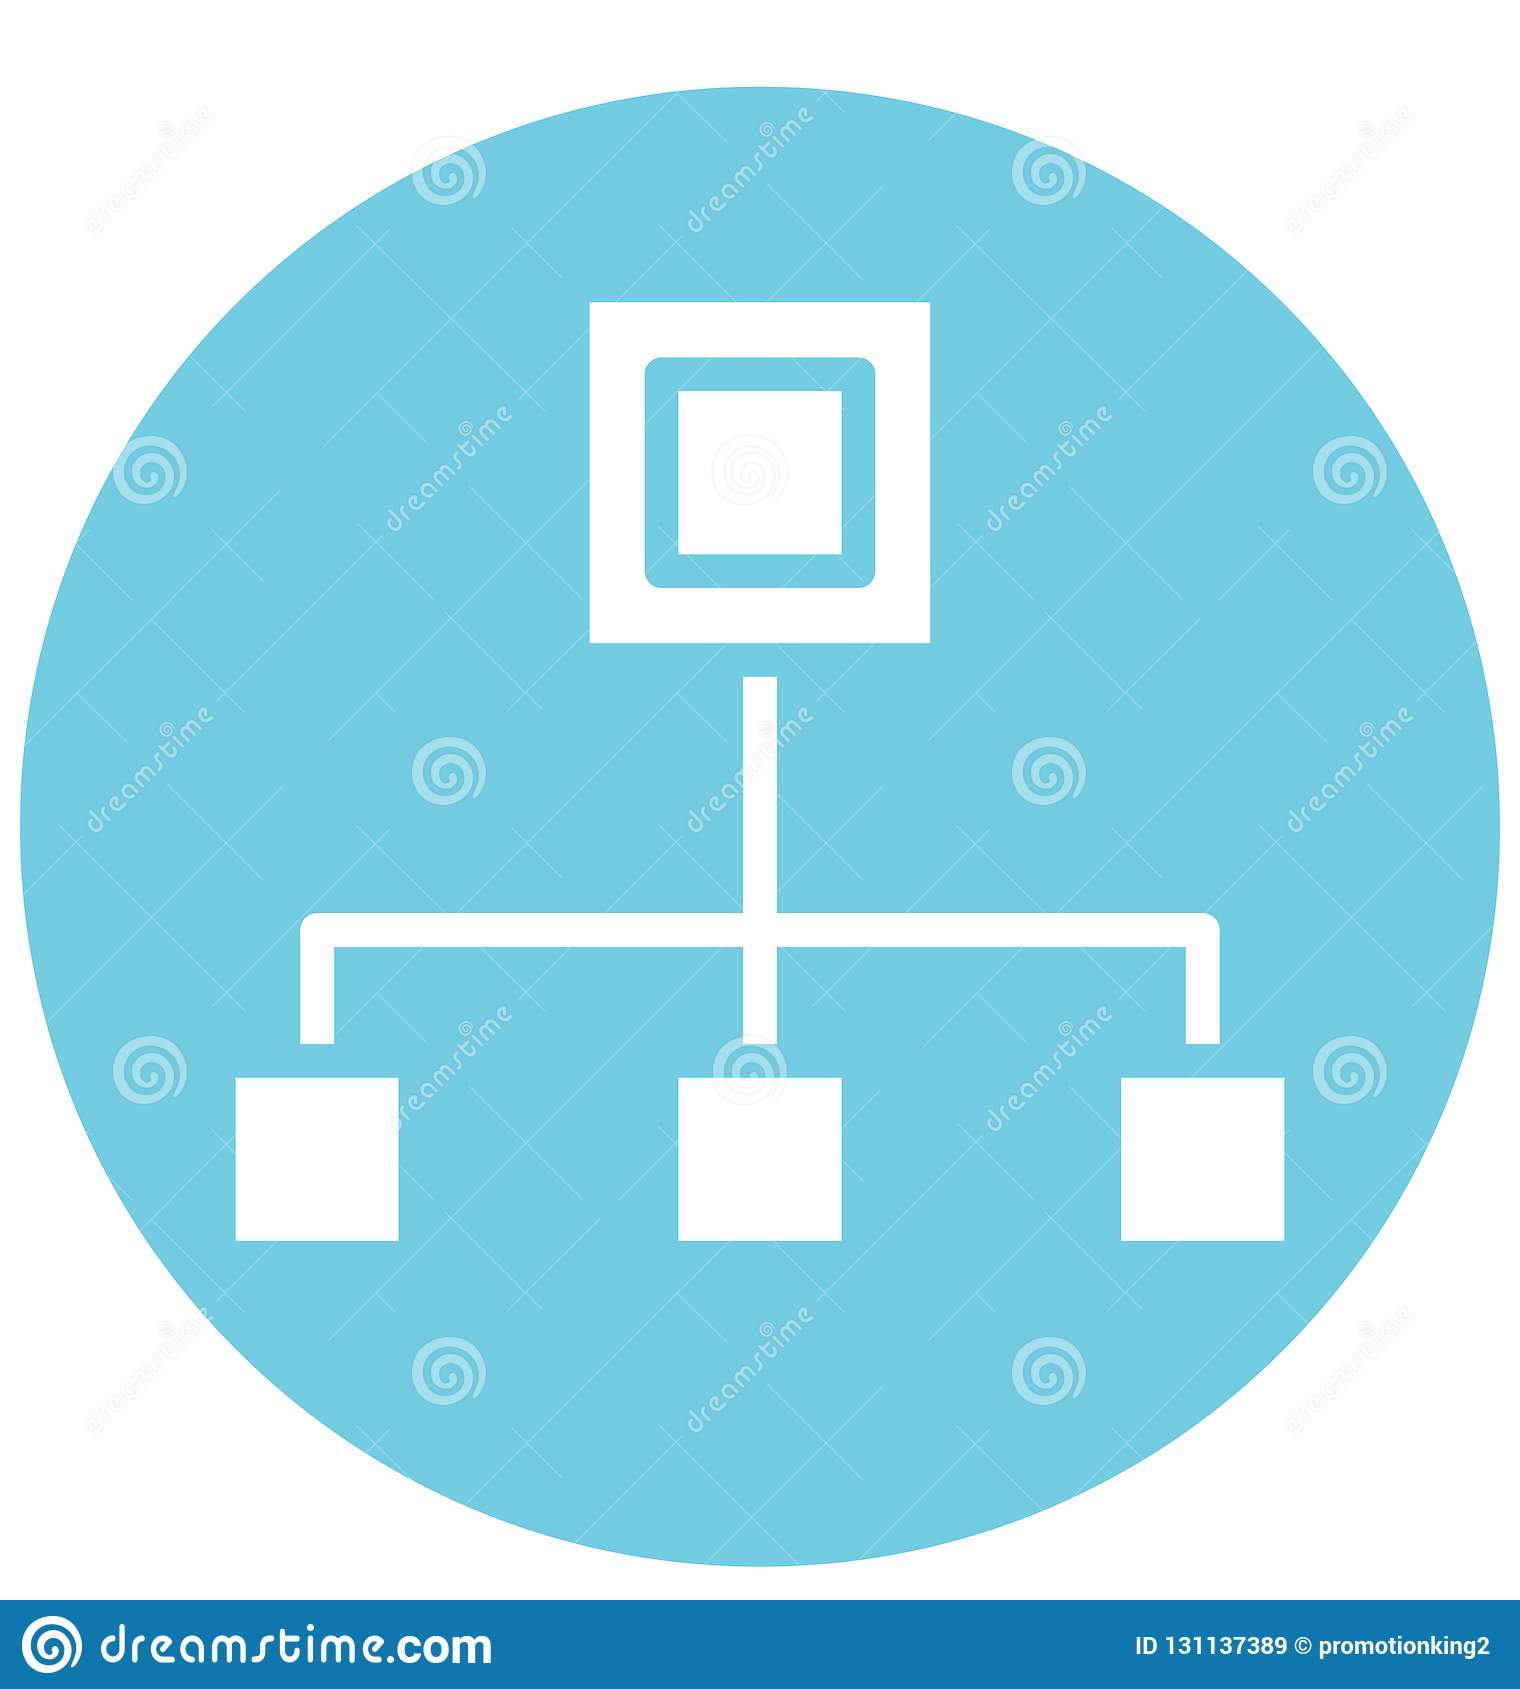 Hierarchy Isolated Vector Icon That can be easily Modified or Edited.